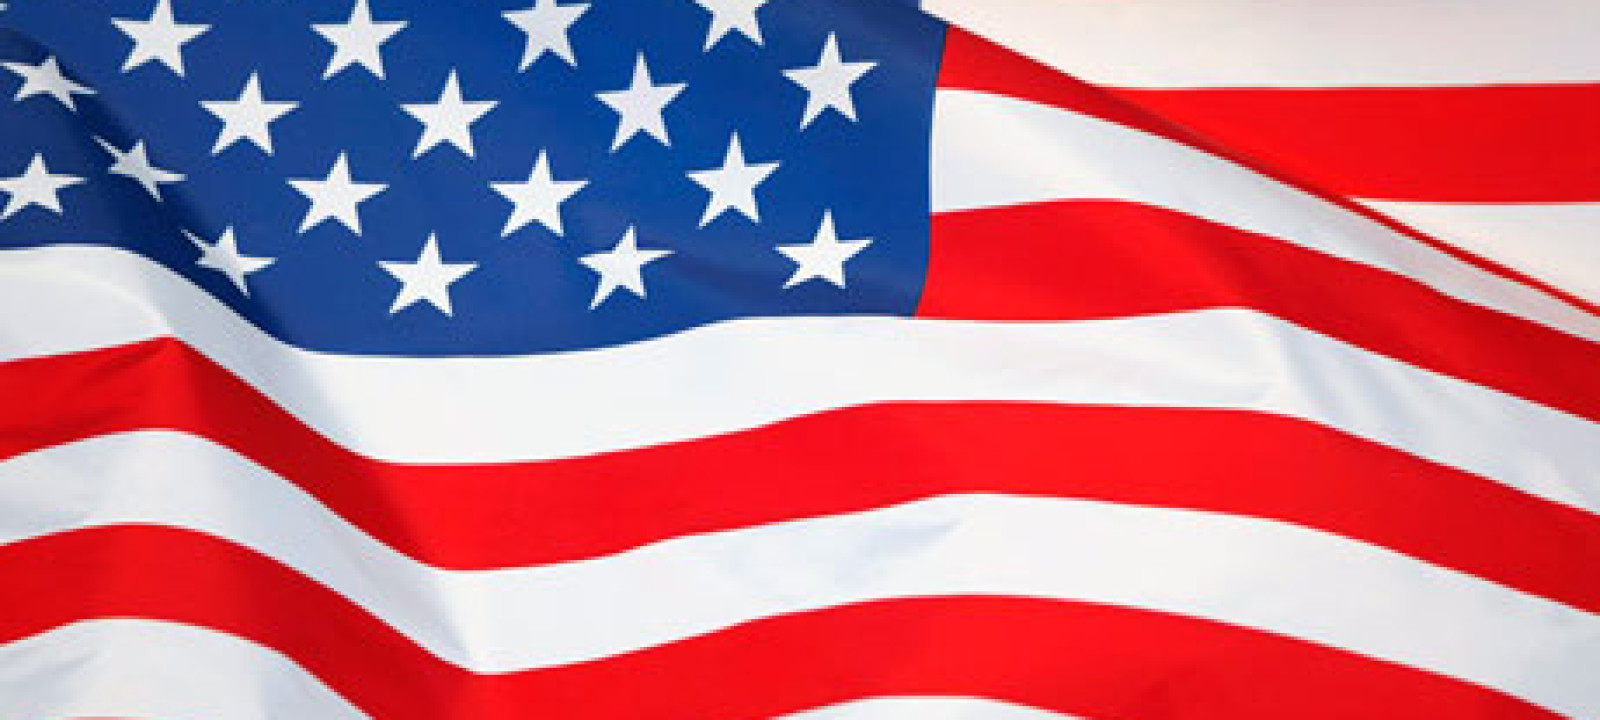 460x300_americanflag